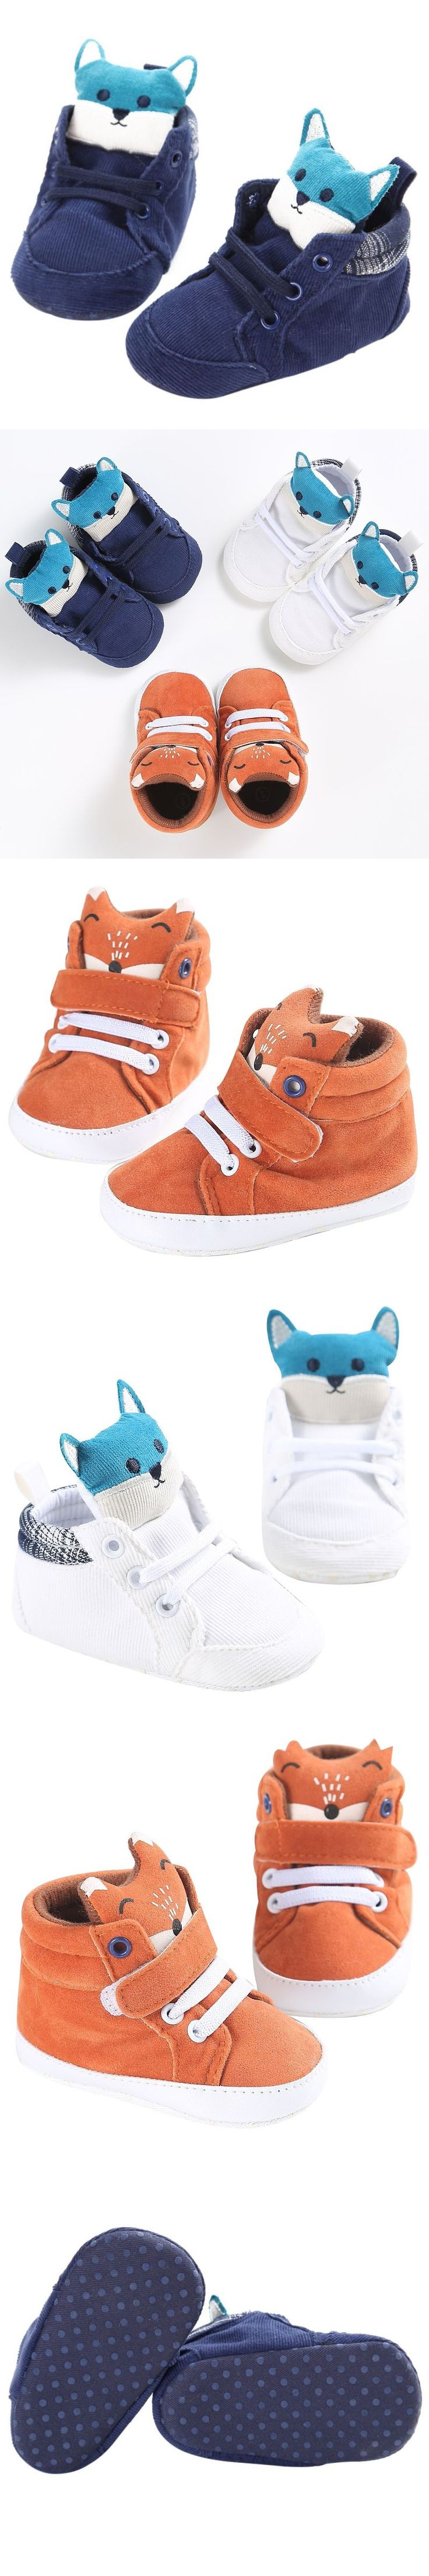 Winter baby boy girl baby shoes Cotton Cloth kid Fox head Lace first walker Canvas Sneaker anti-slip Soft Sole Boots